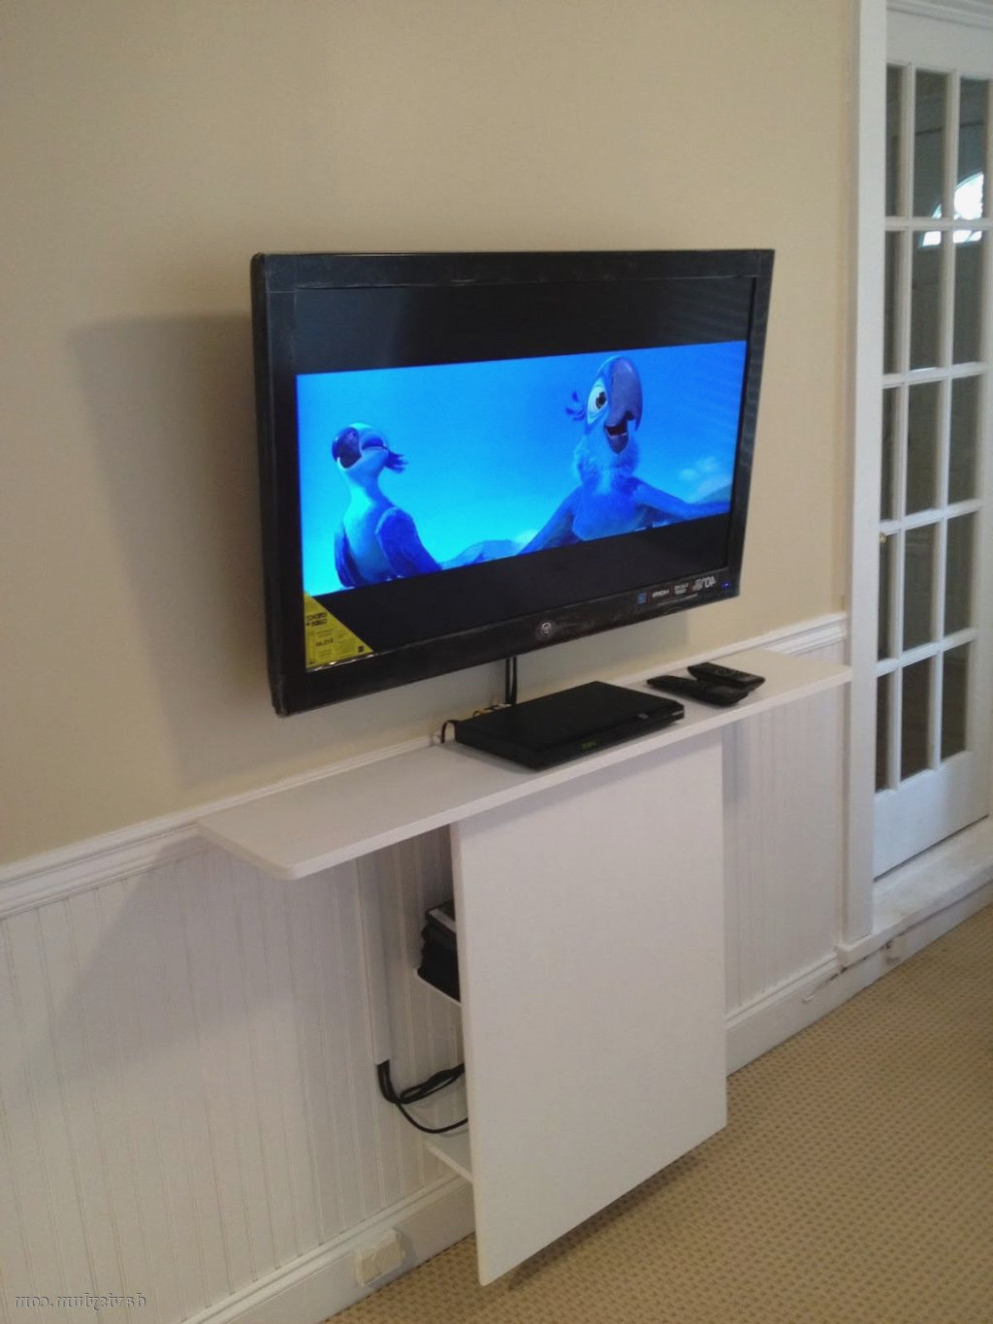 Tall Narrow Tv Stands With Regard To Most Popular Tall Skinny Tv Stand Excellent Narrow For Bedroom Stands Slim And On (View 14 of 20)